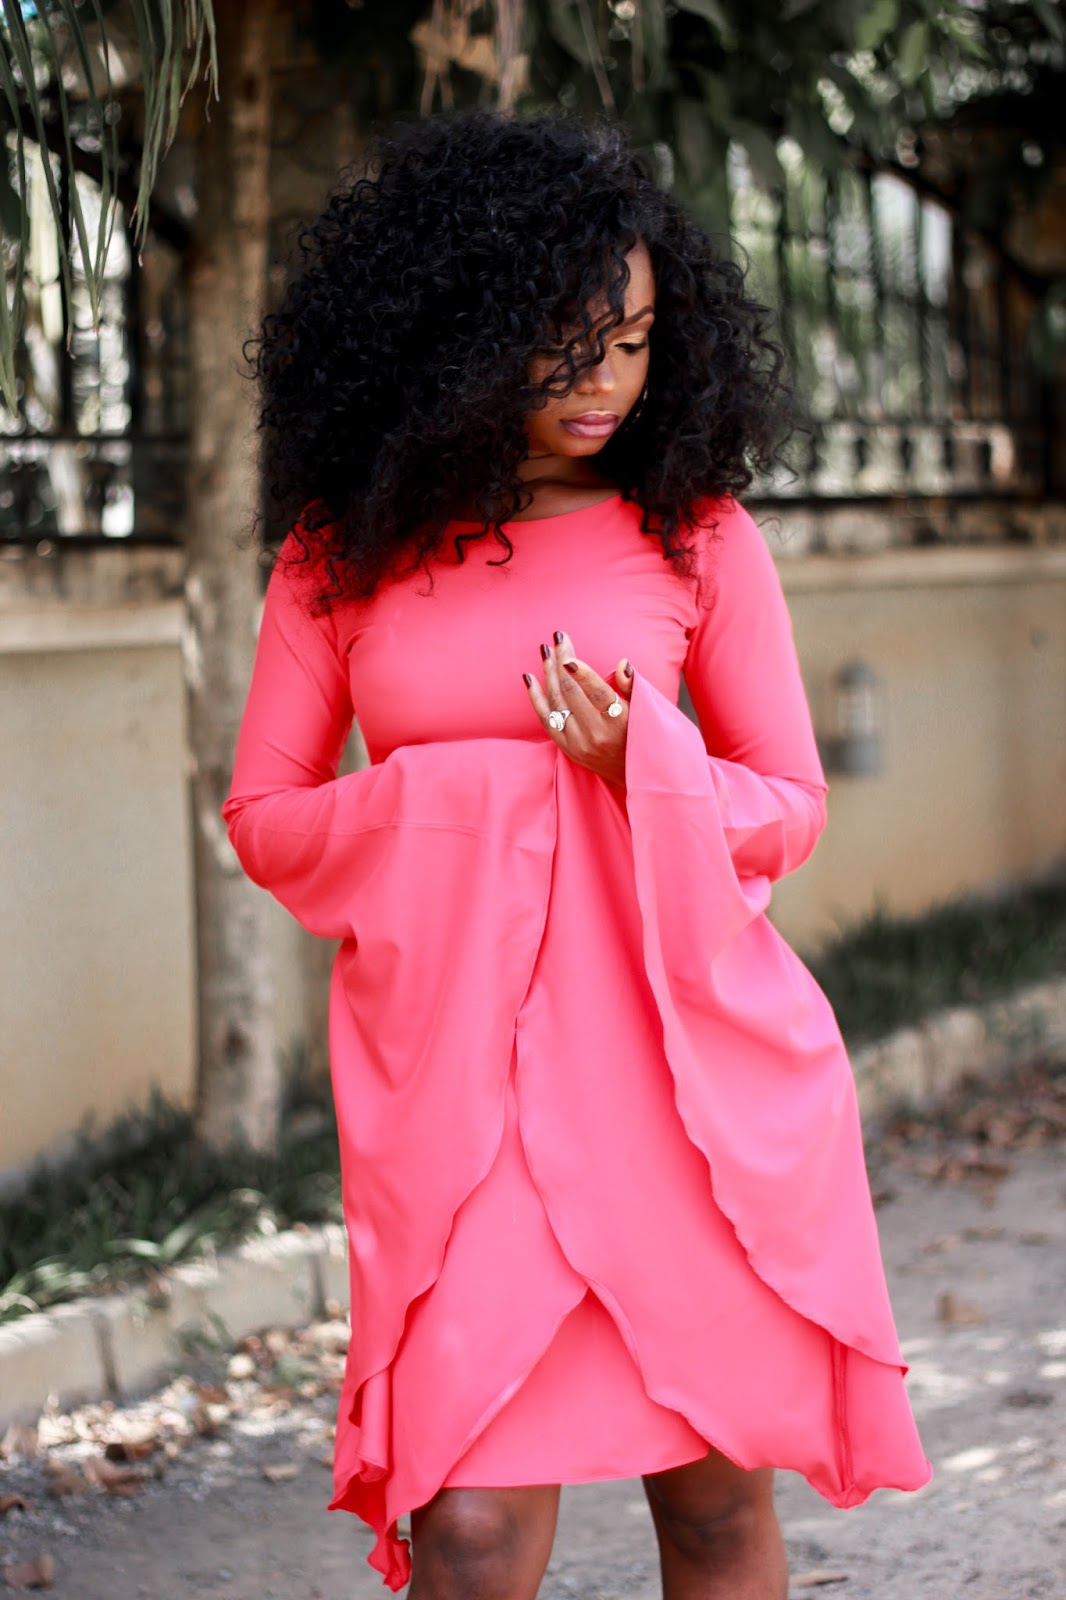 FLARED OUT IN KITAU - Red Flared Dress with Flared sleeves